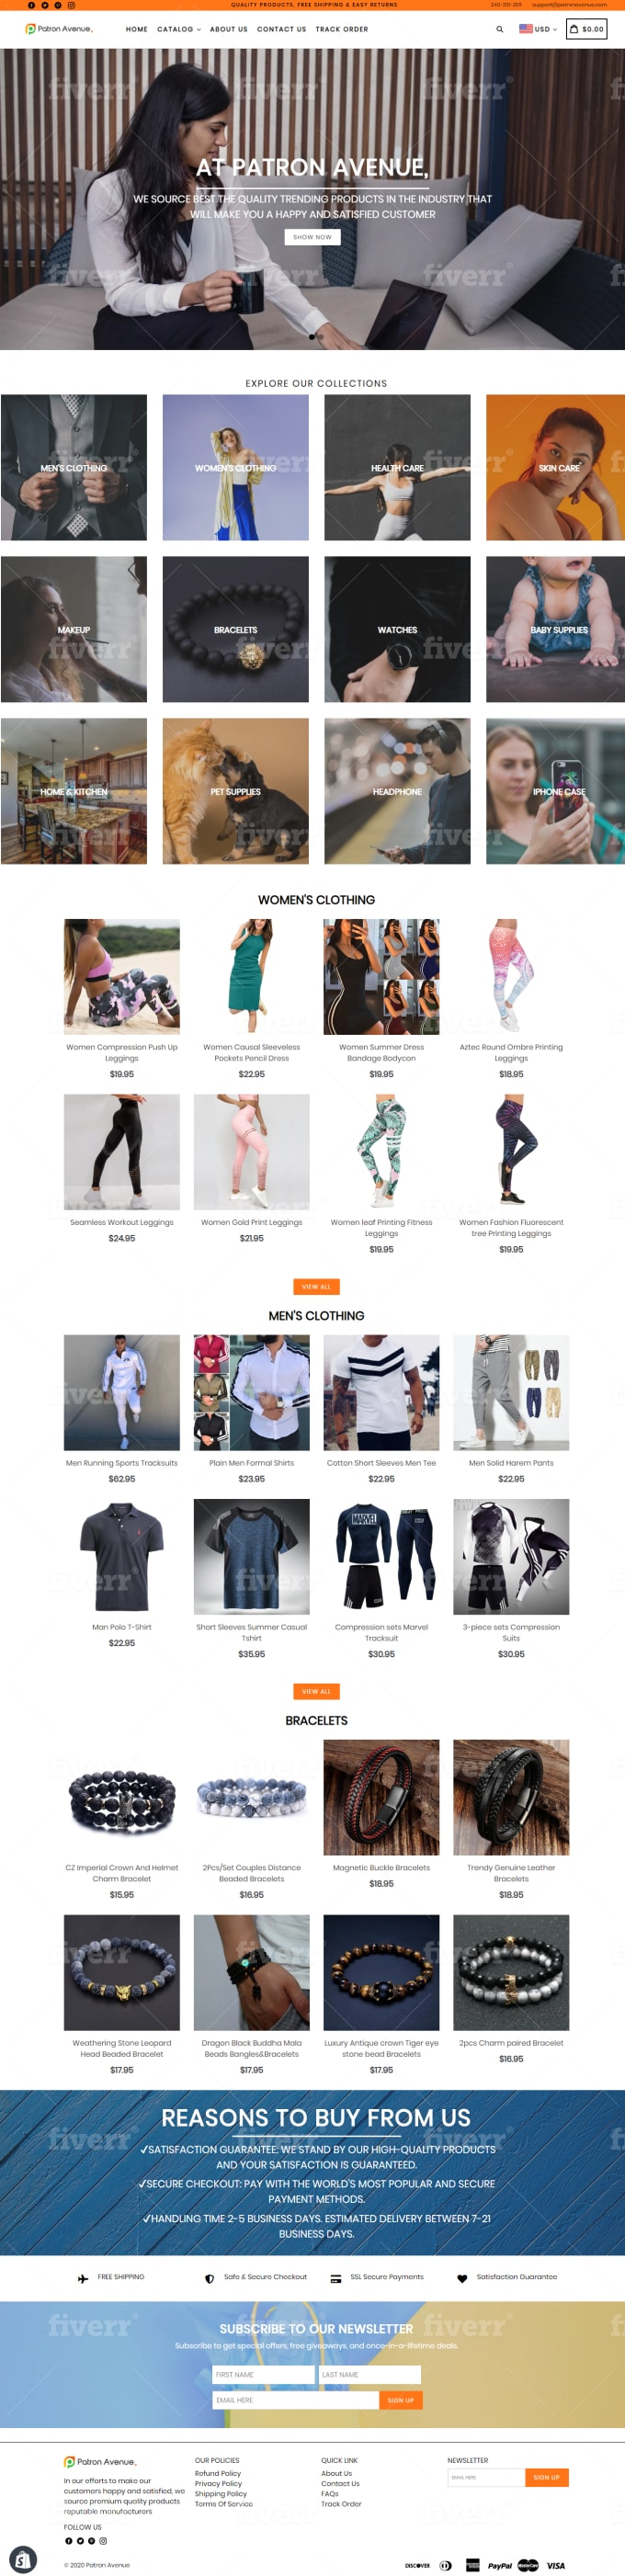 I will create, launch and manage shopify dropshipping store